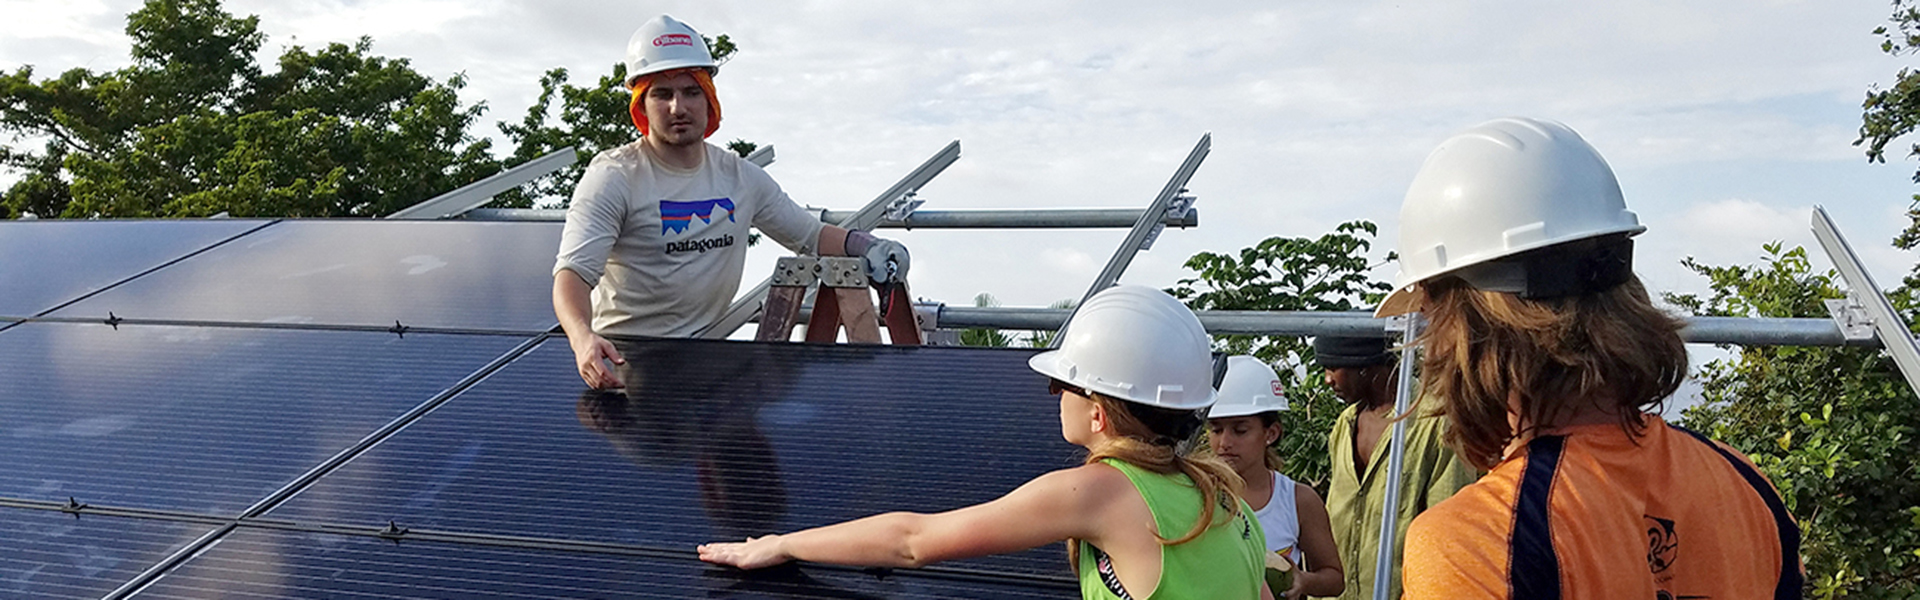 Students at Solar Panel